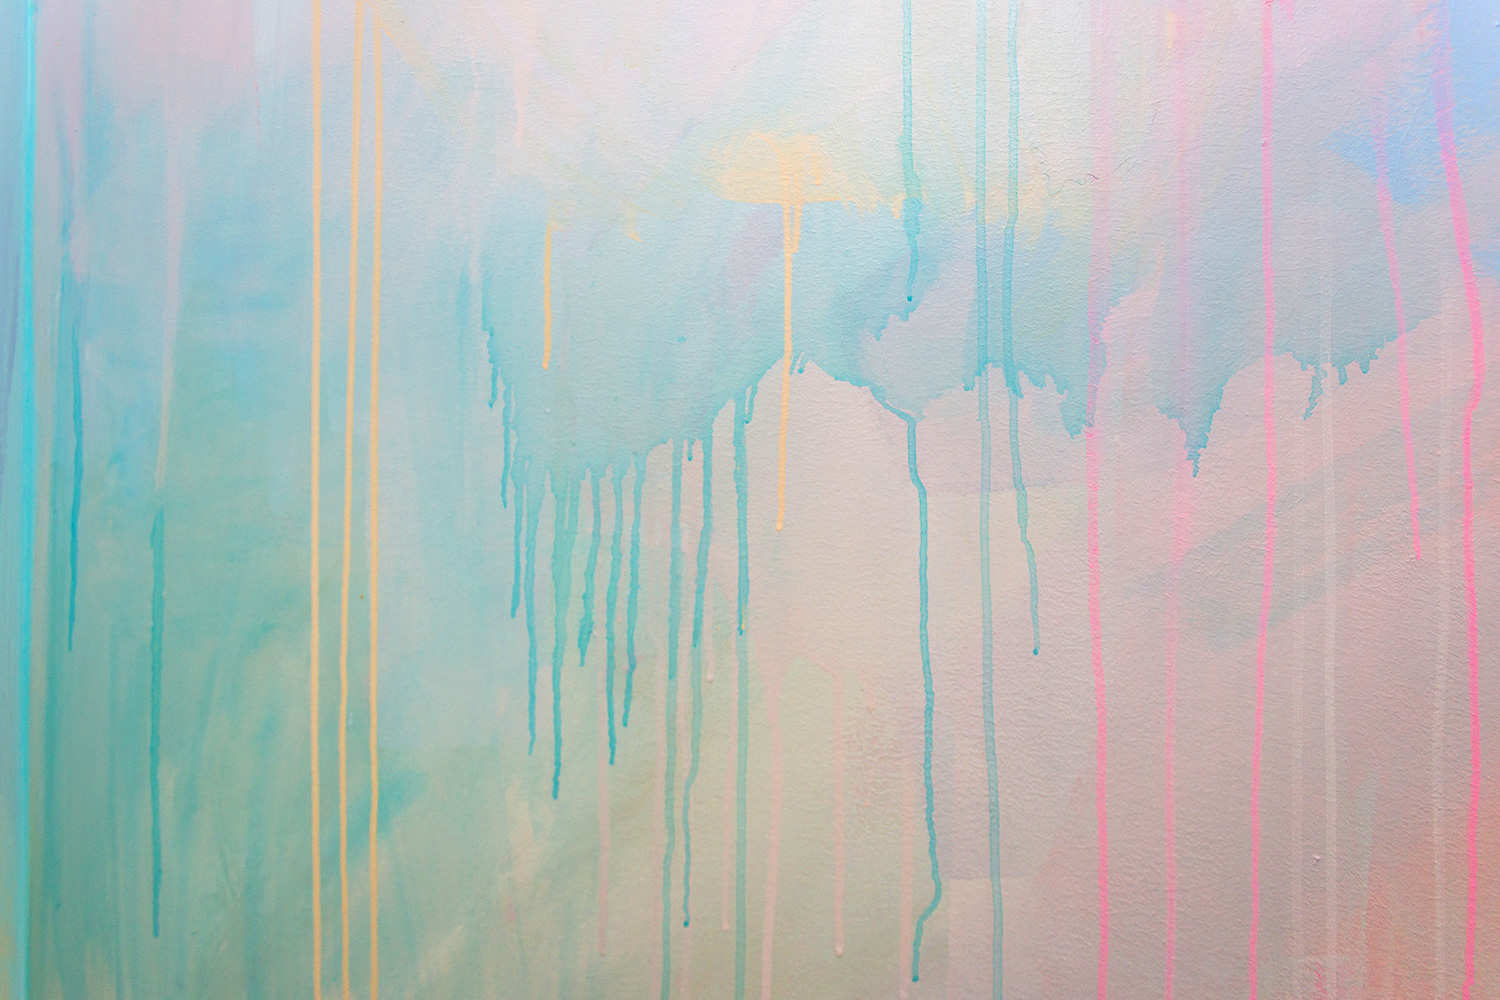 Close up detail of abstract pastel mural featuring dripping paint.